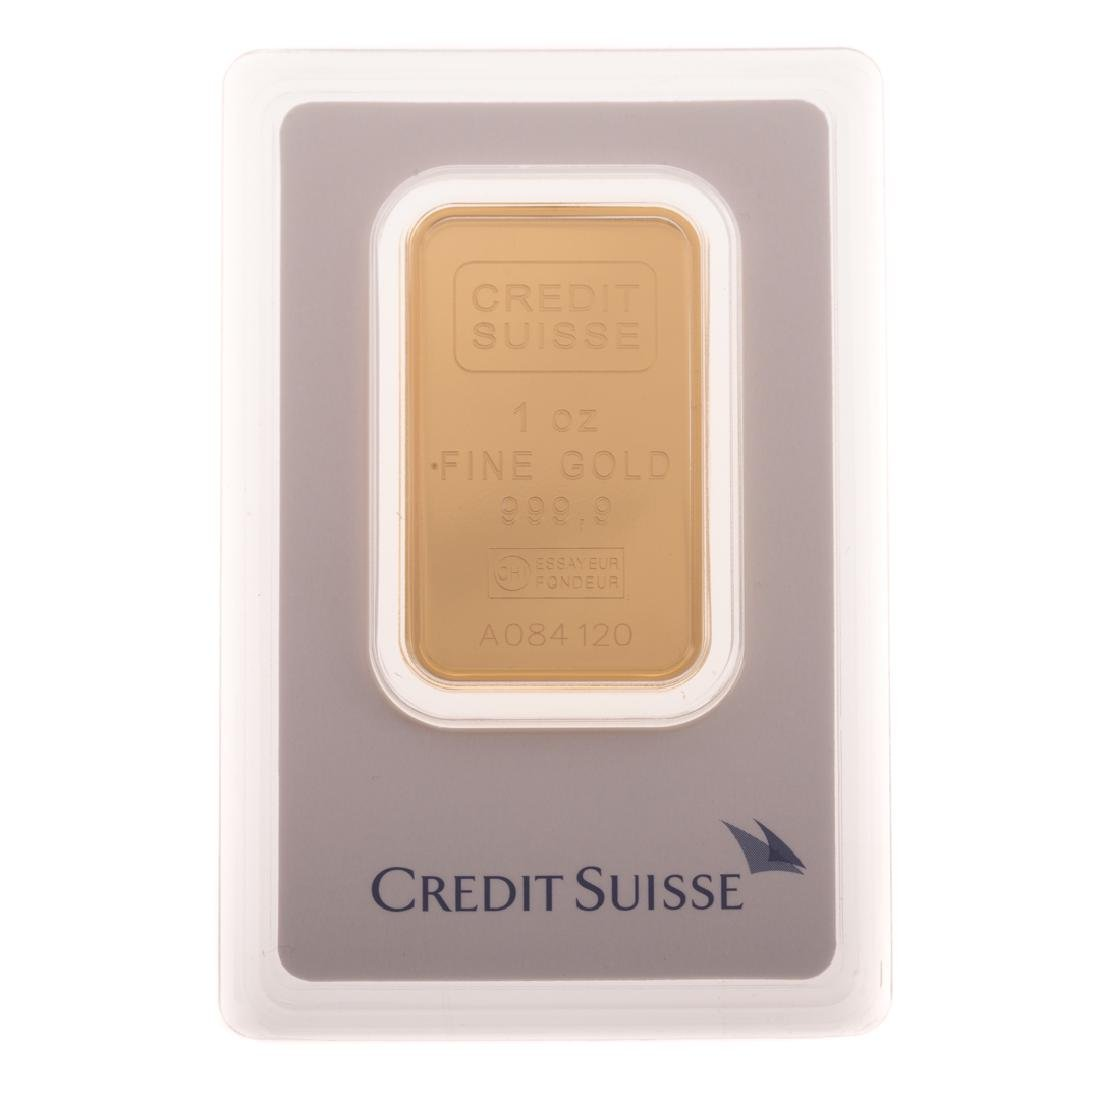 [US] 1 Ounce .999 Gold Bar - Credit Suisse